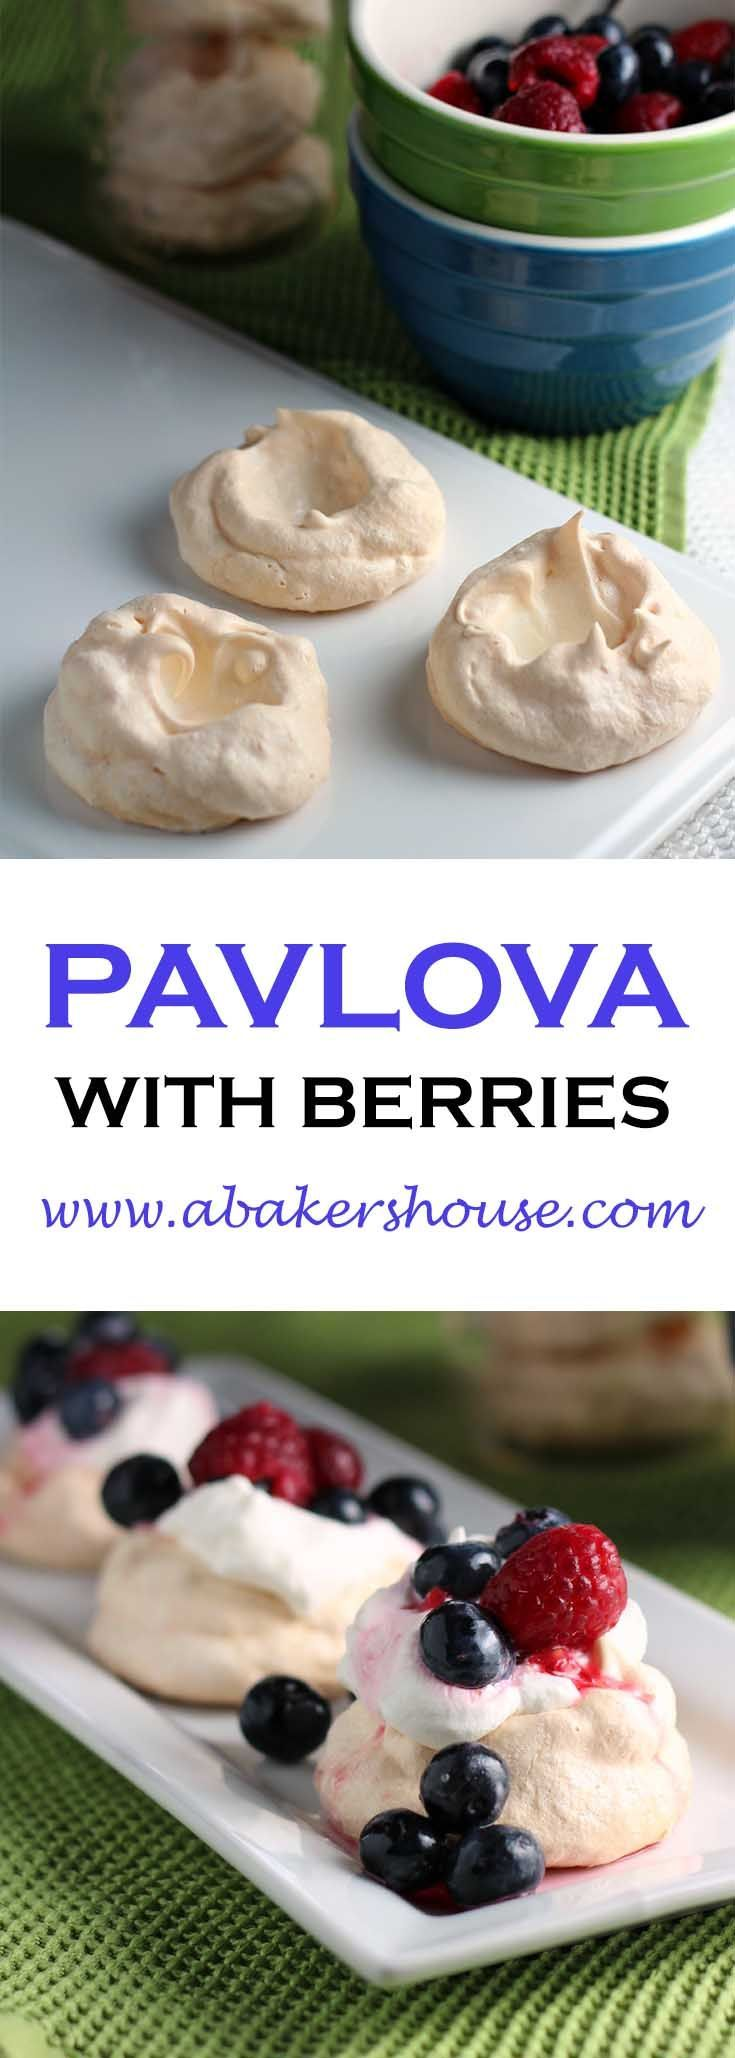 Make this Pavlova with Berries in anticipation for summer, and as we approach this Memorial Day weekend I am ready to enjoy the brightness that berries lend to a plate. This gluten free dessert is easy to make and ready for entertaining.